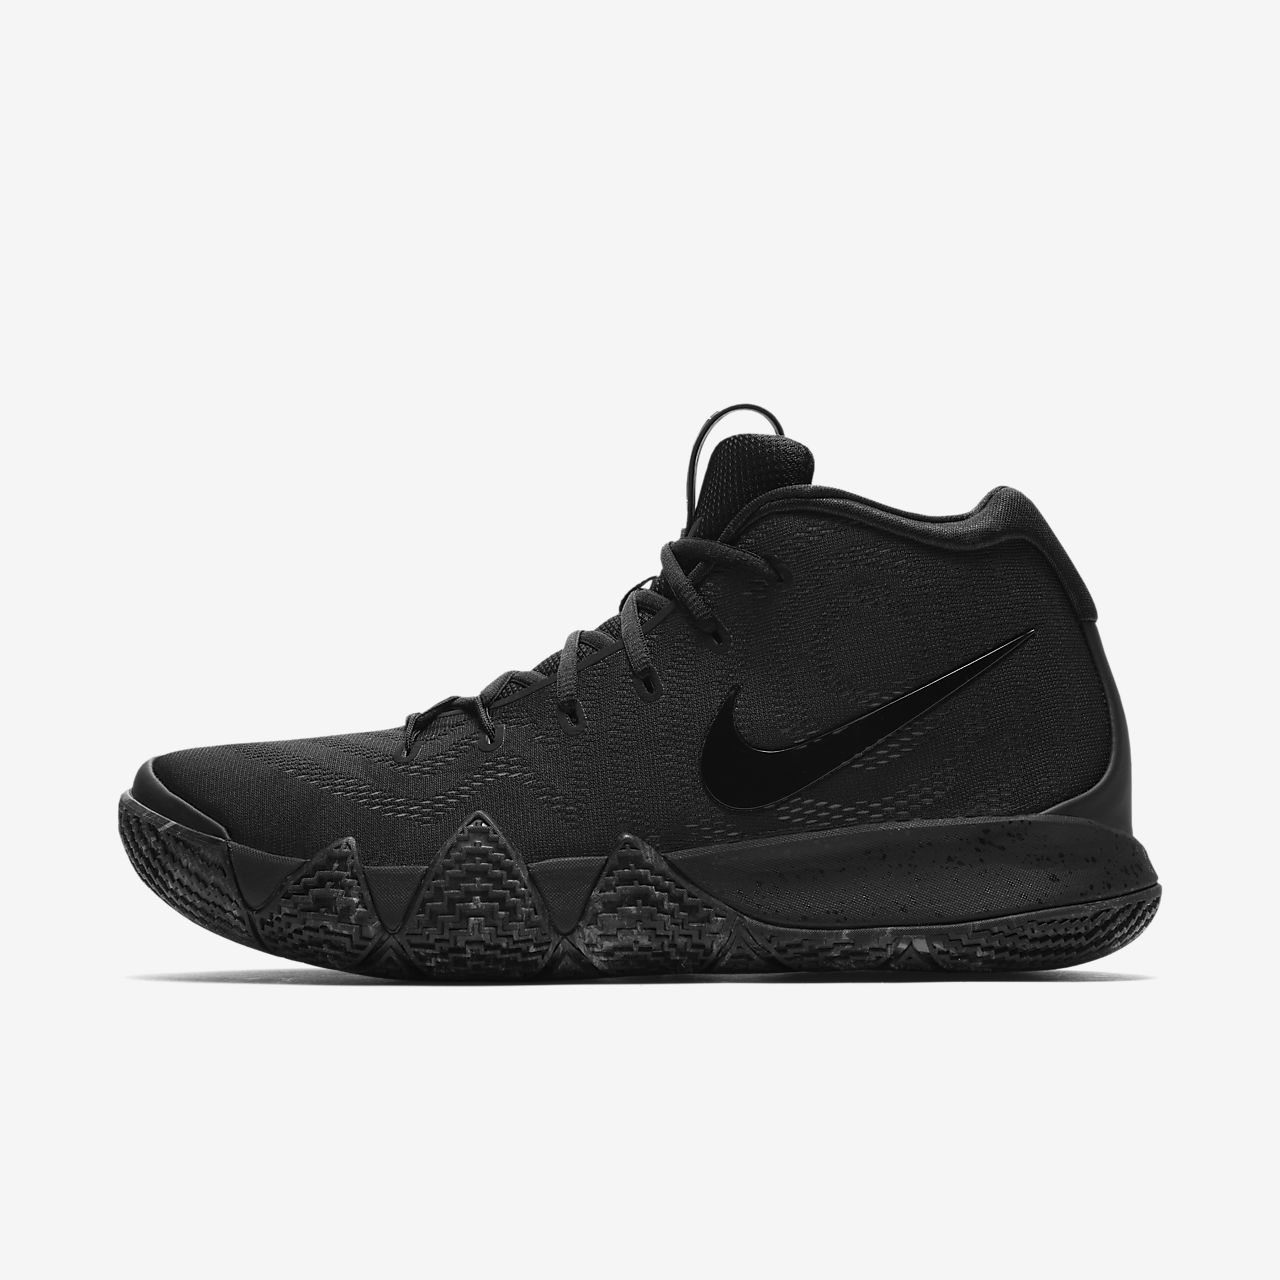 d117ce258422 Low Resolution Kyrie 4 Basketball Shoe Kyrie 4 Basketball Shoe